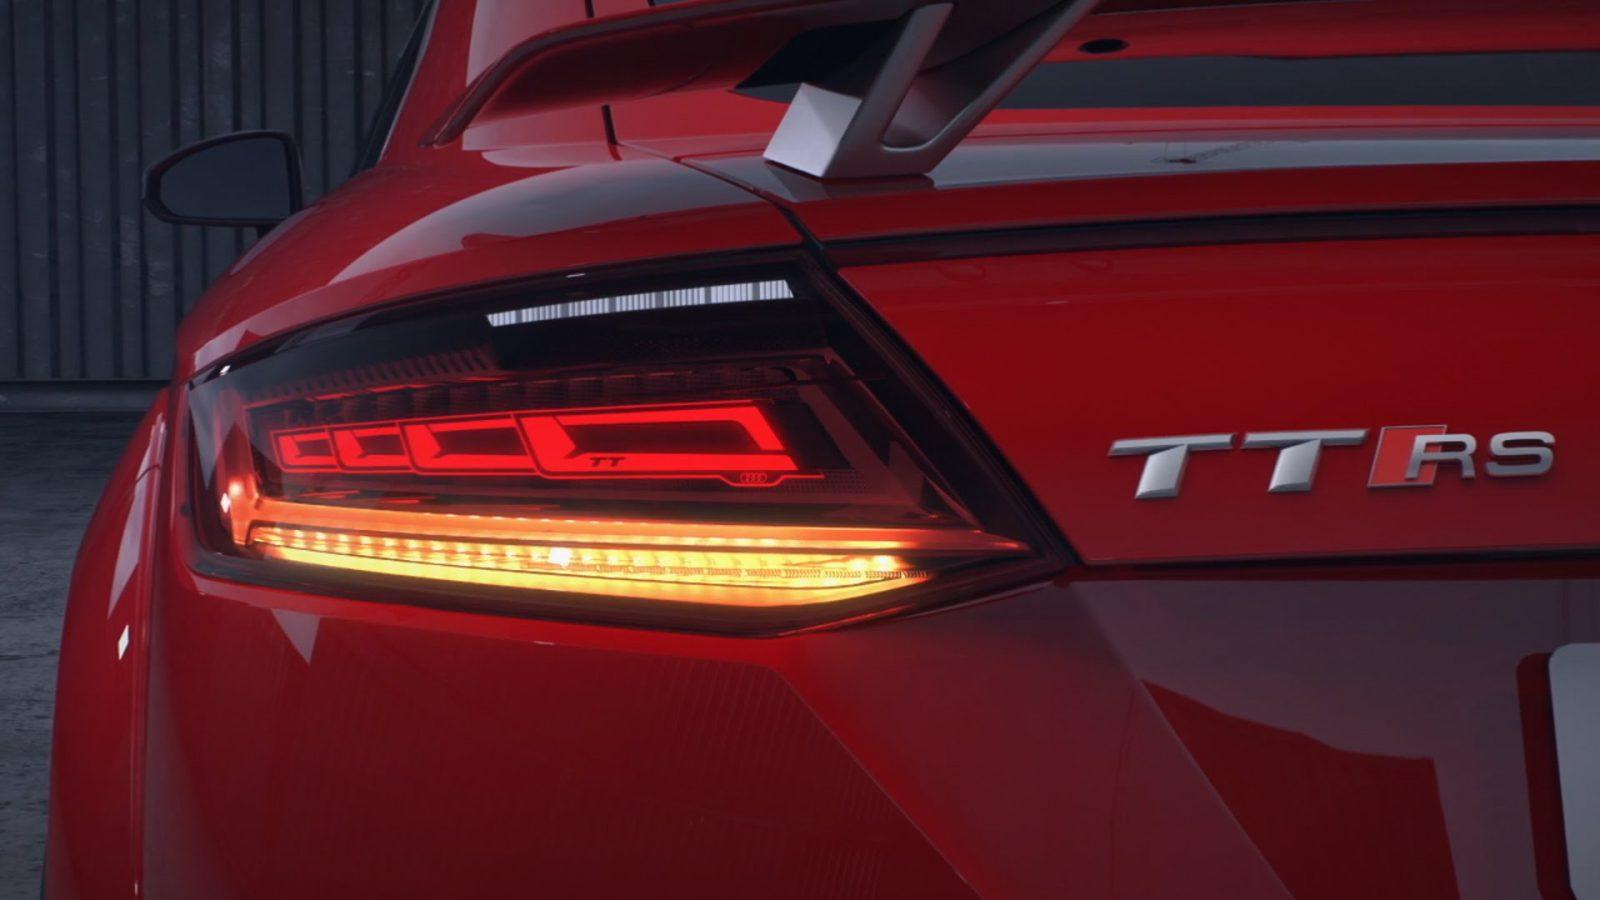 Car Tail Lights >> Important Things To Know About Tail Lights Car From Japan